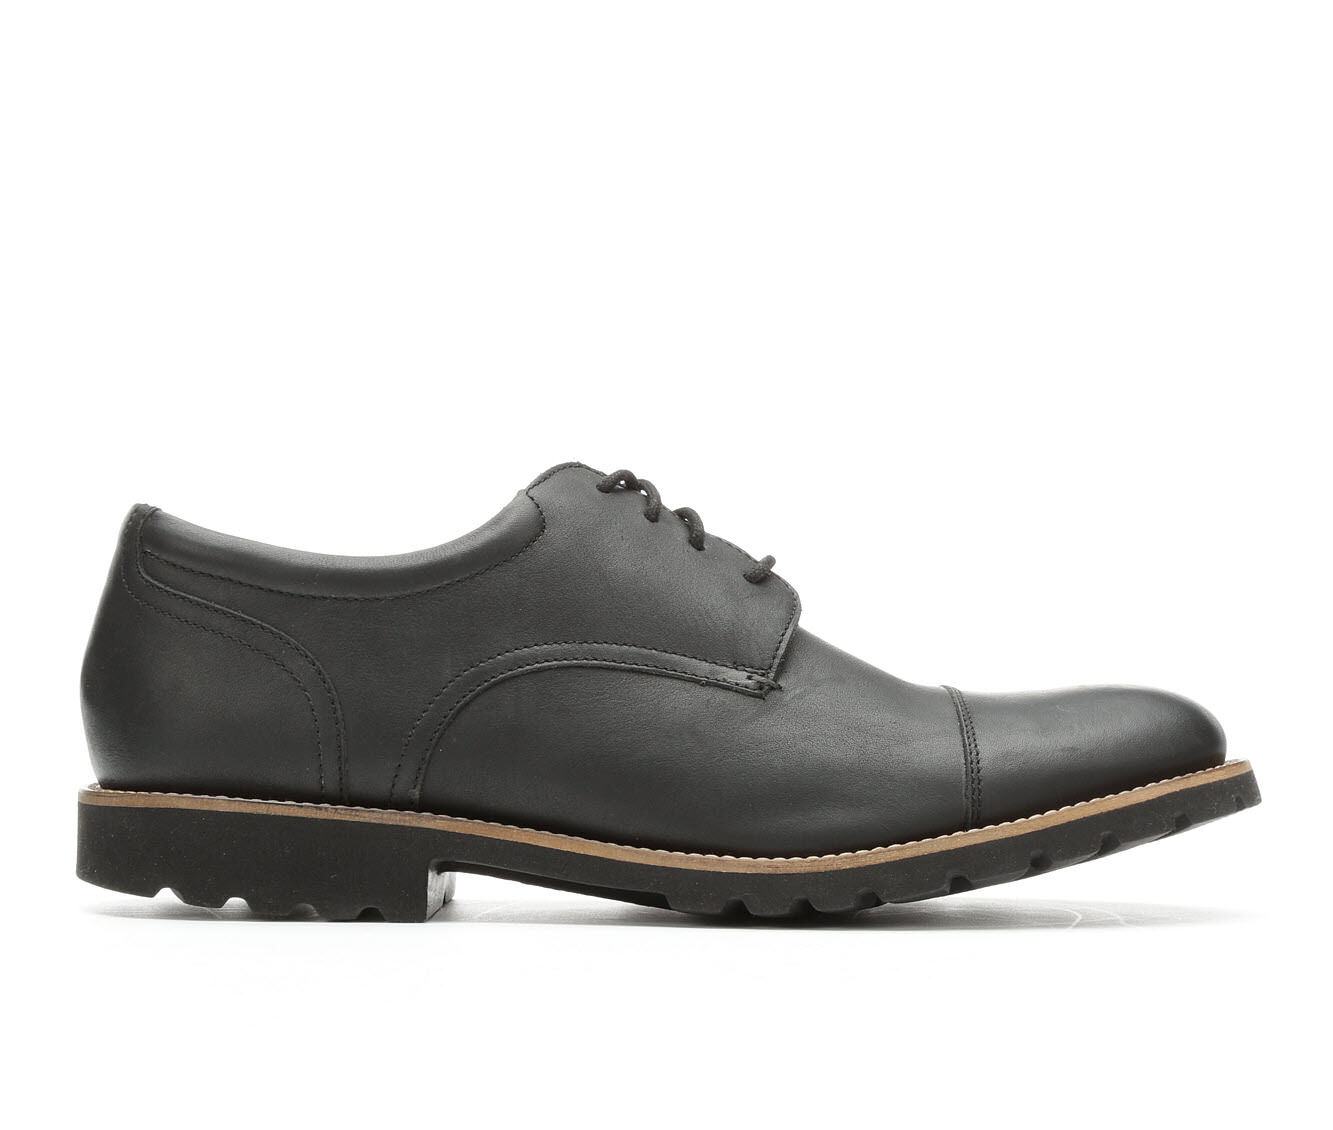 Men's Rockport Modern Break Cap Toe Oxfords Black